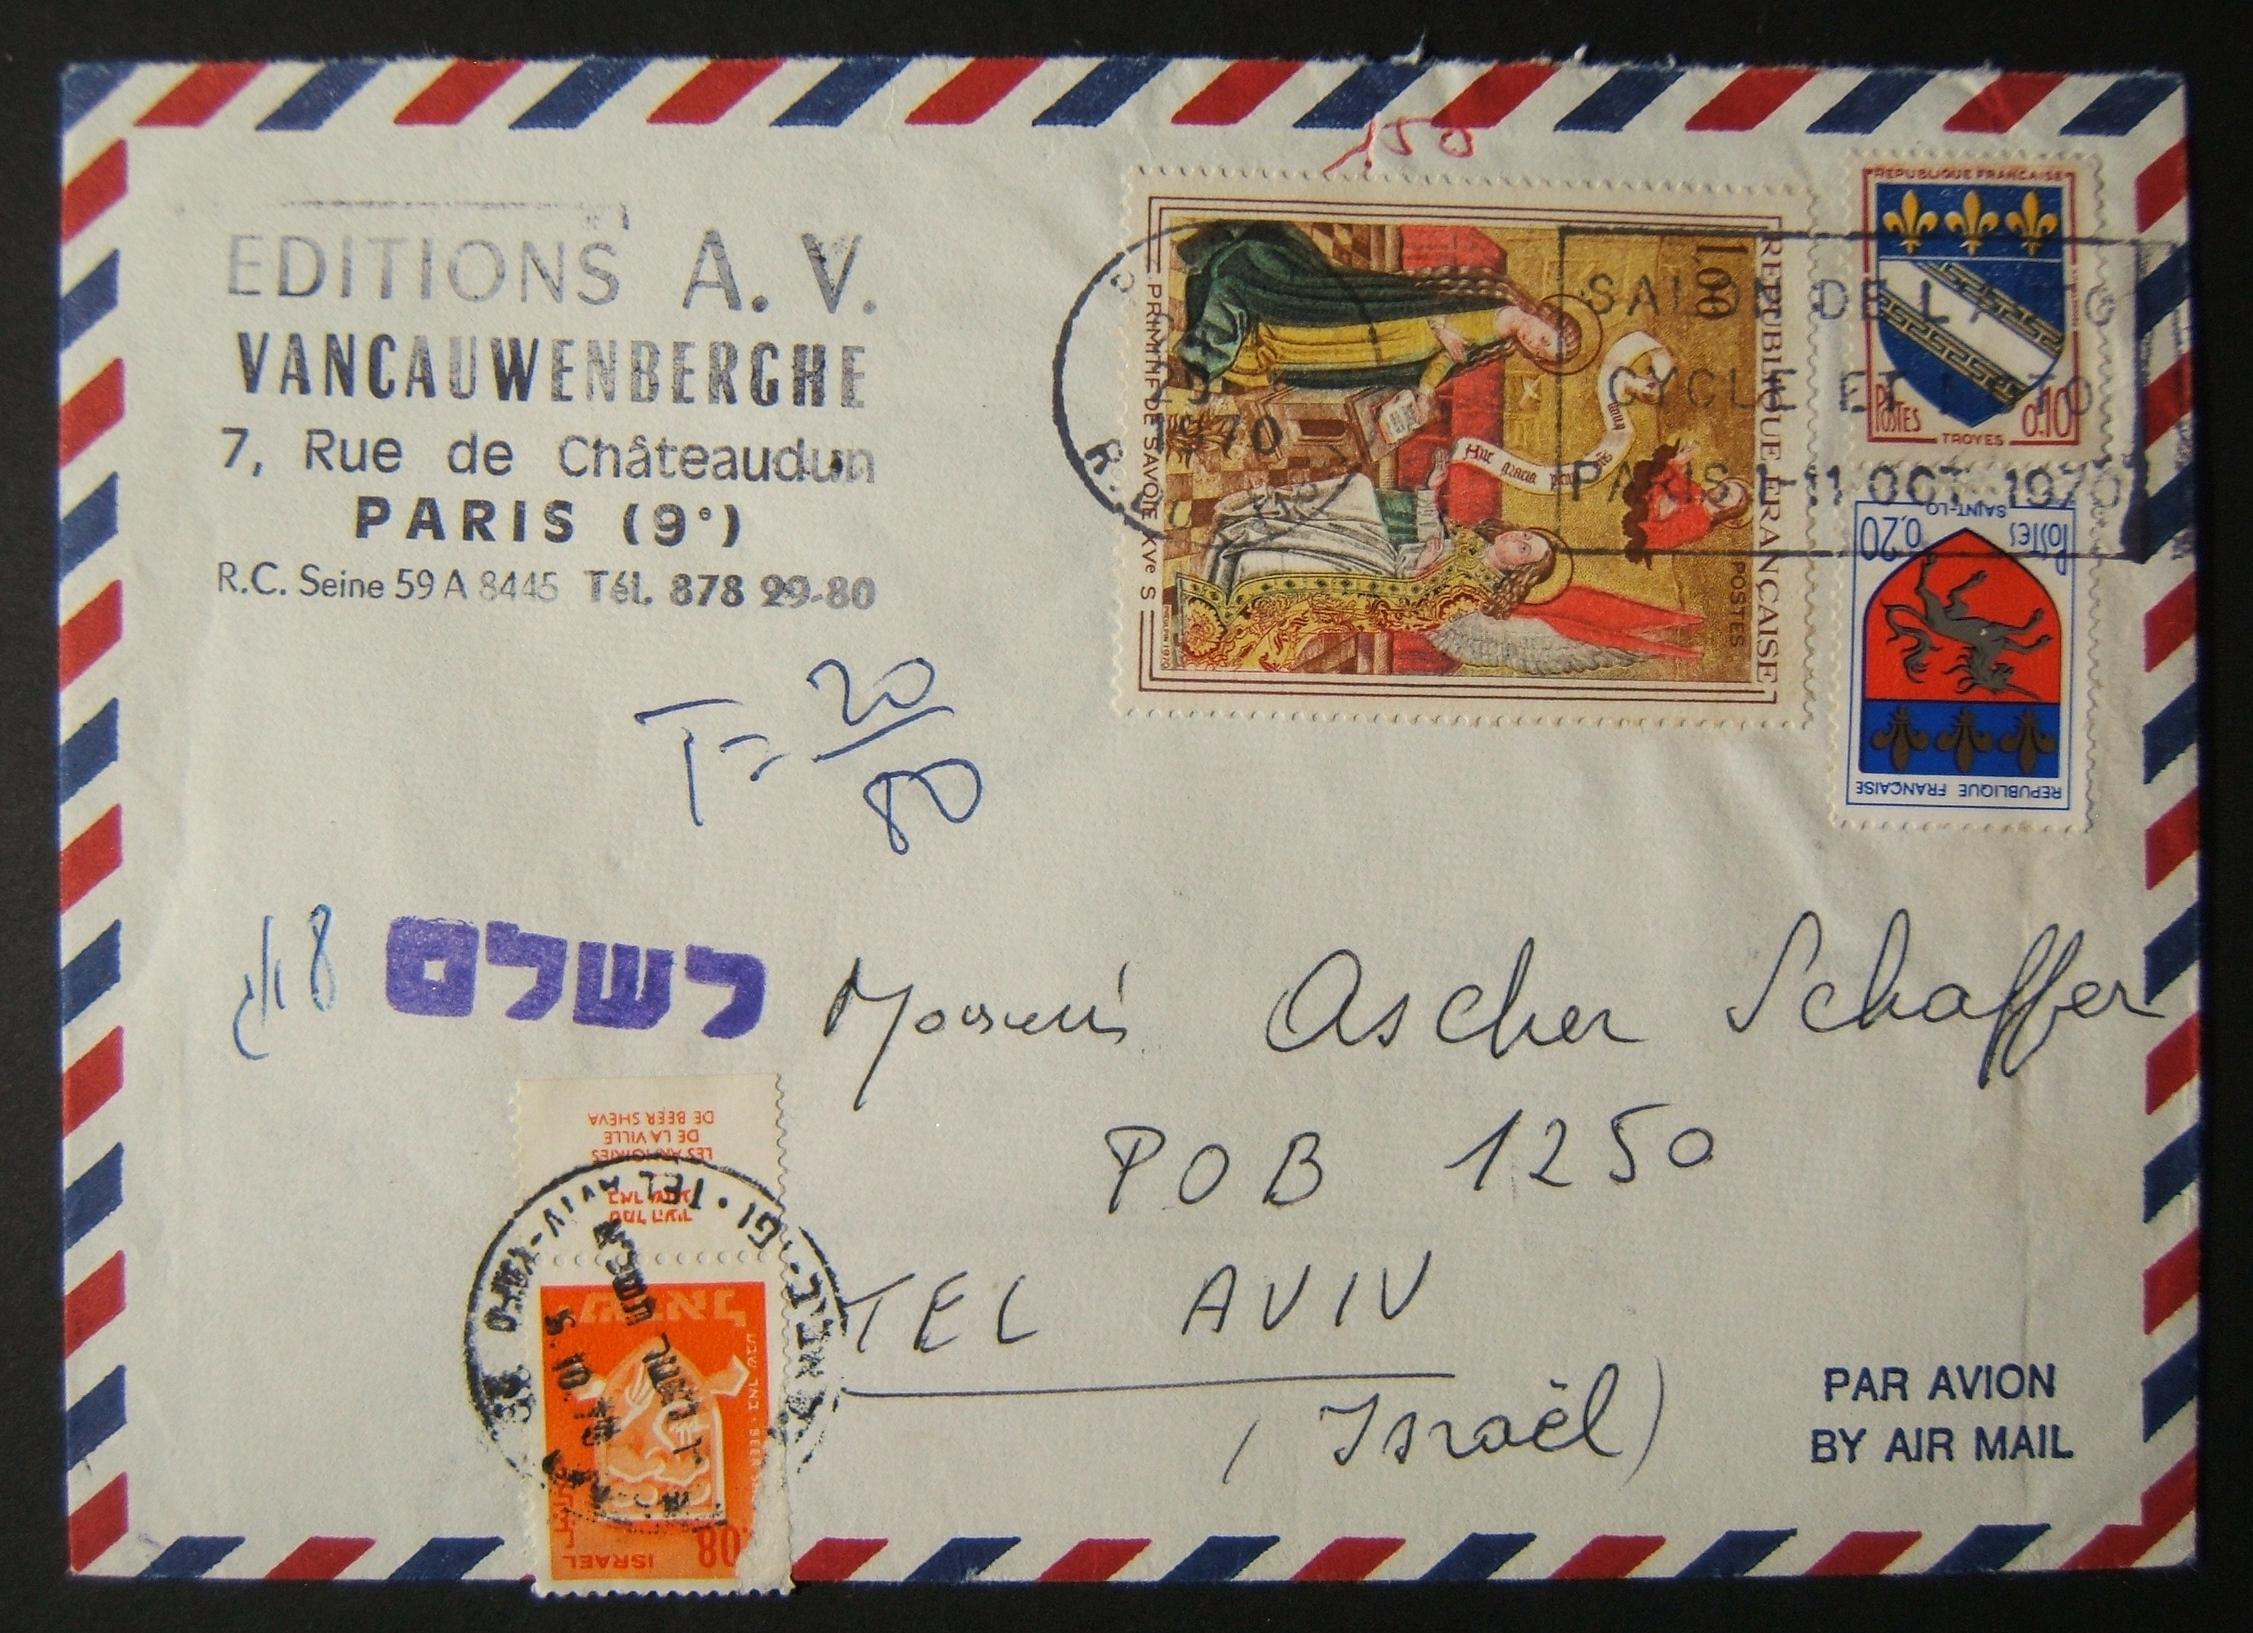 1970 incoming French taxed mail: 29-9-70 business stationary airmail commercial cover ex PARIS to TLV underfranked at 1.30Fr and taxed 0.08L in Israel, marked by scarce